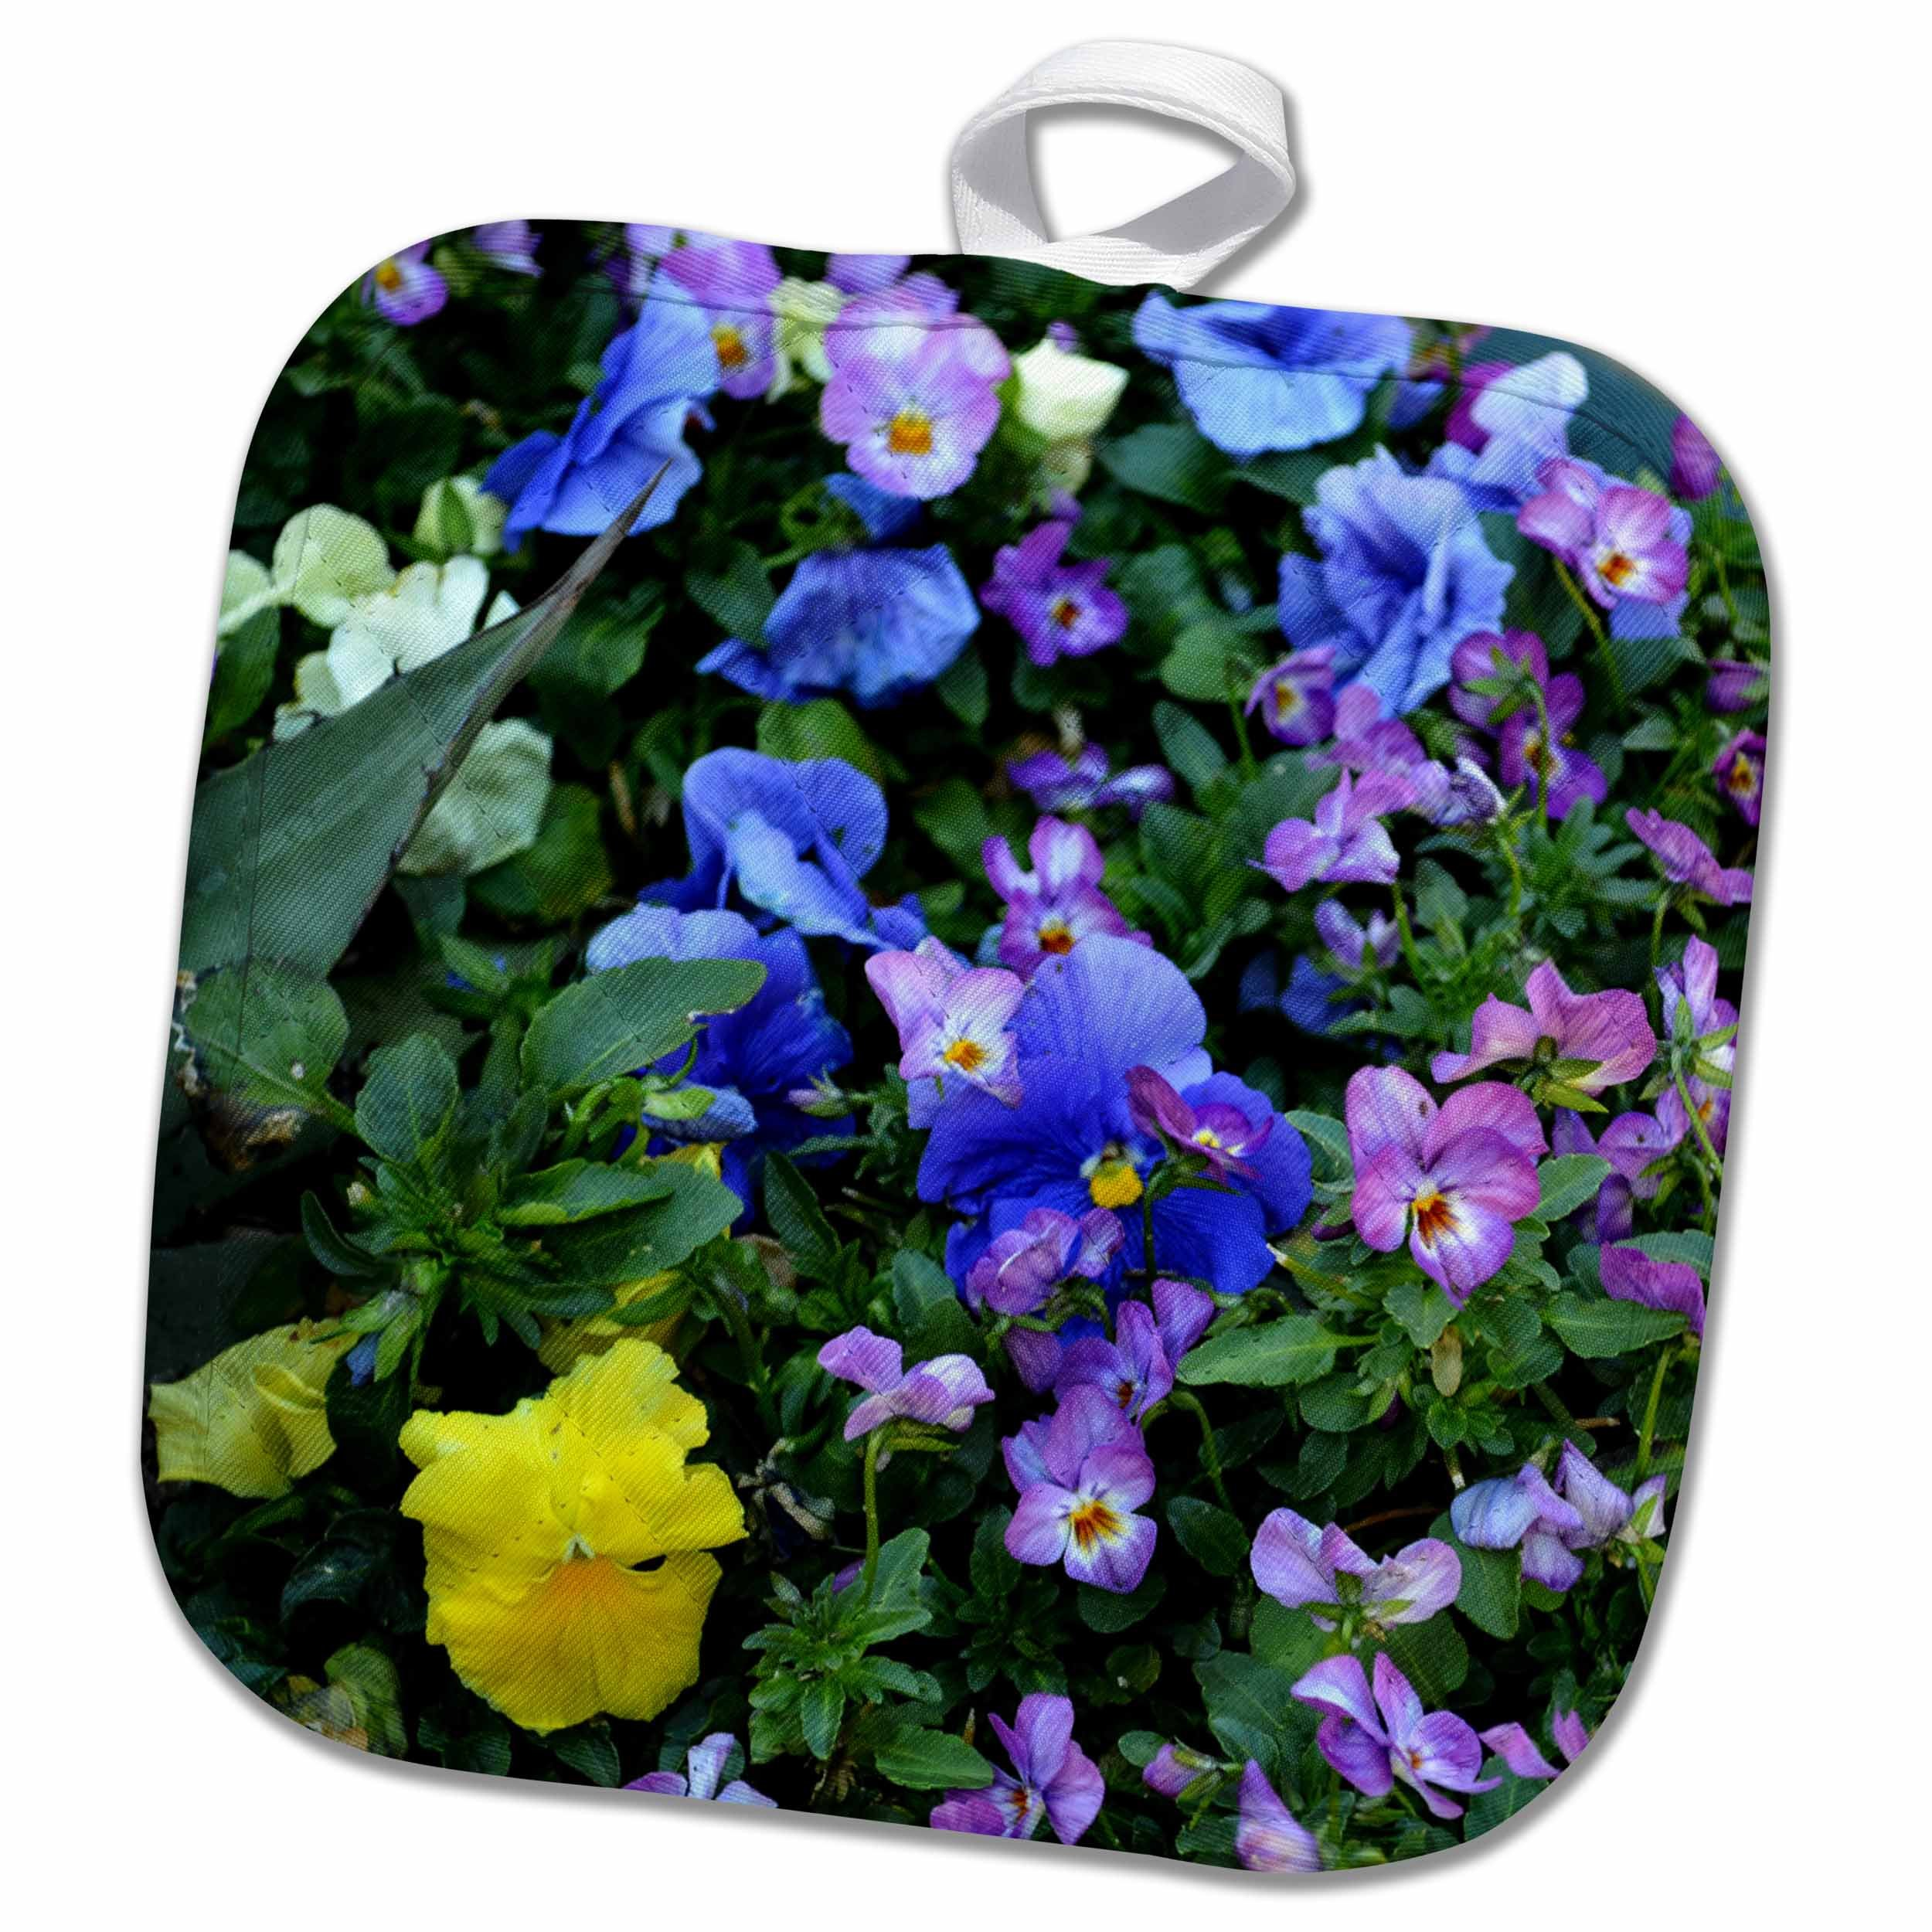 3D Rose a Wall of Purple Pansies Pot Holder, 8'' x 8''